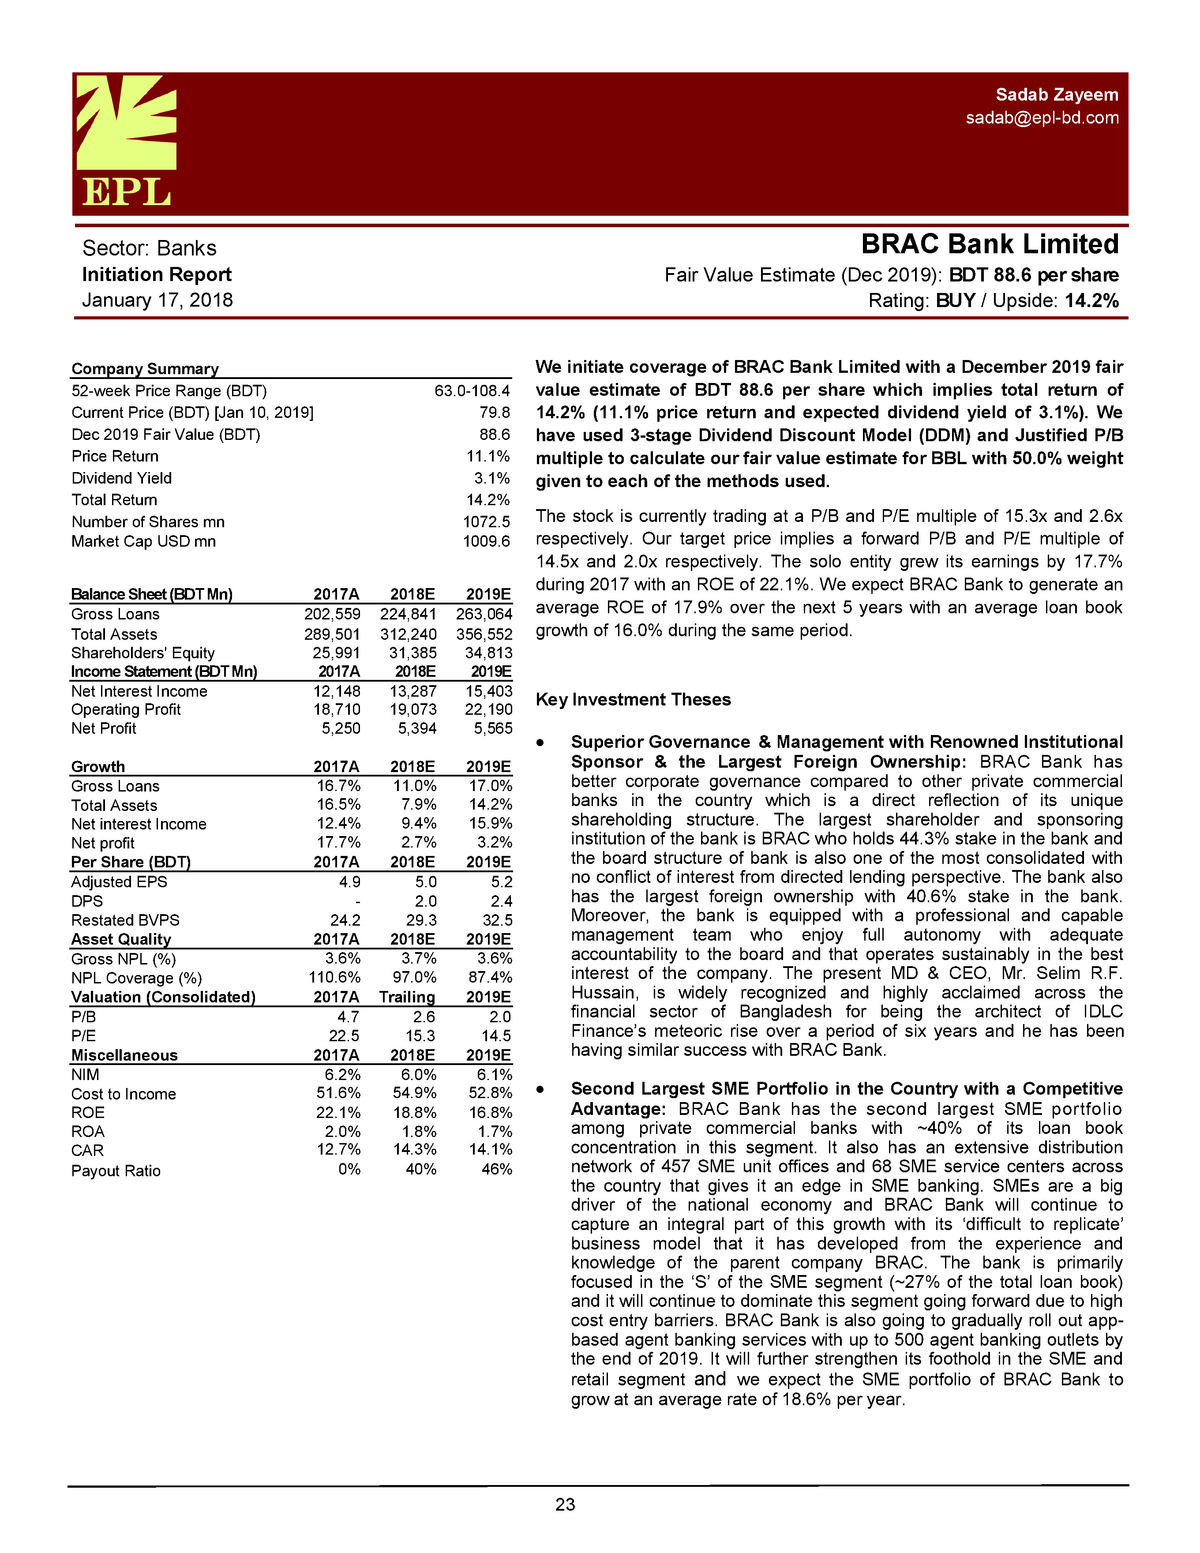 BRAC Bank Valuation - ECO317: Money, Banking and Financial